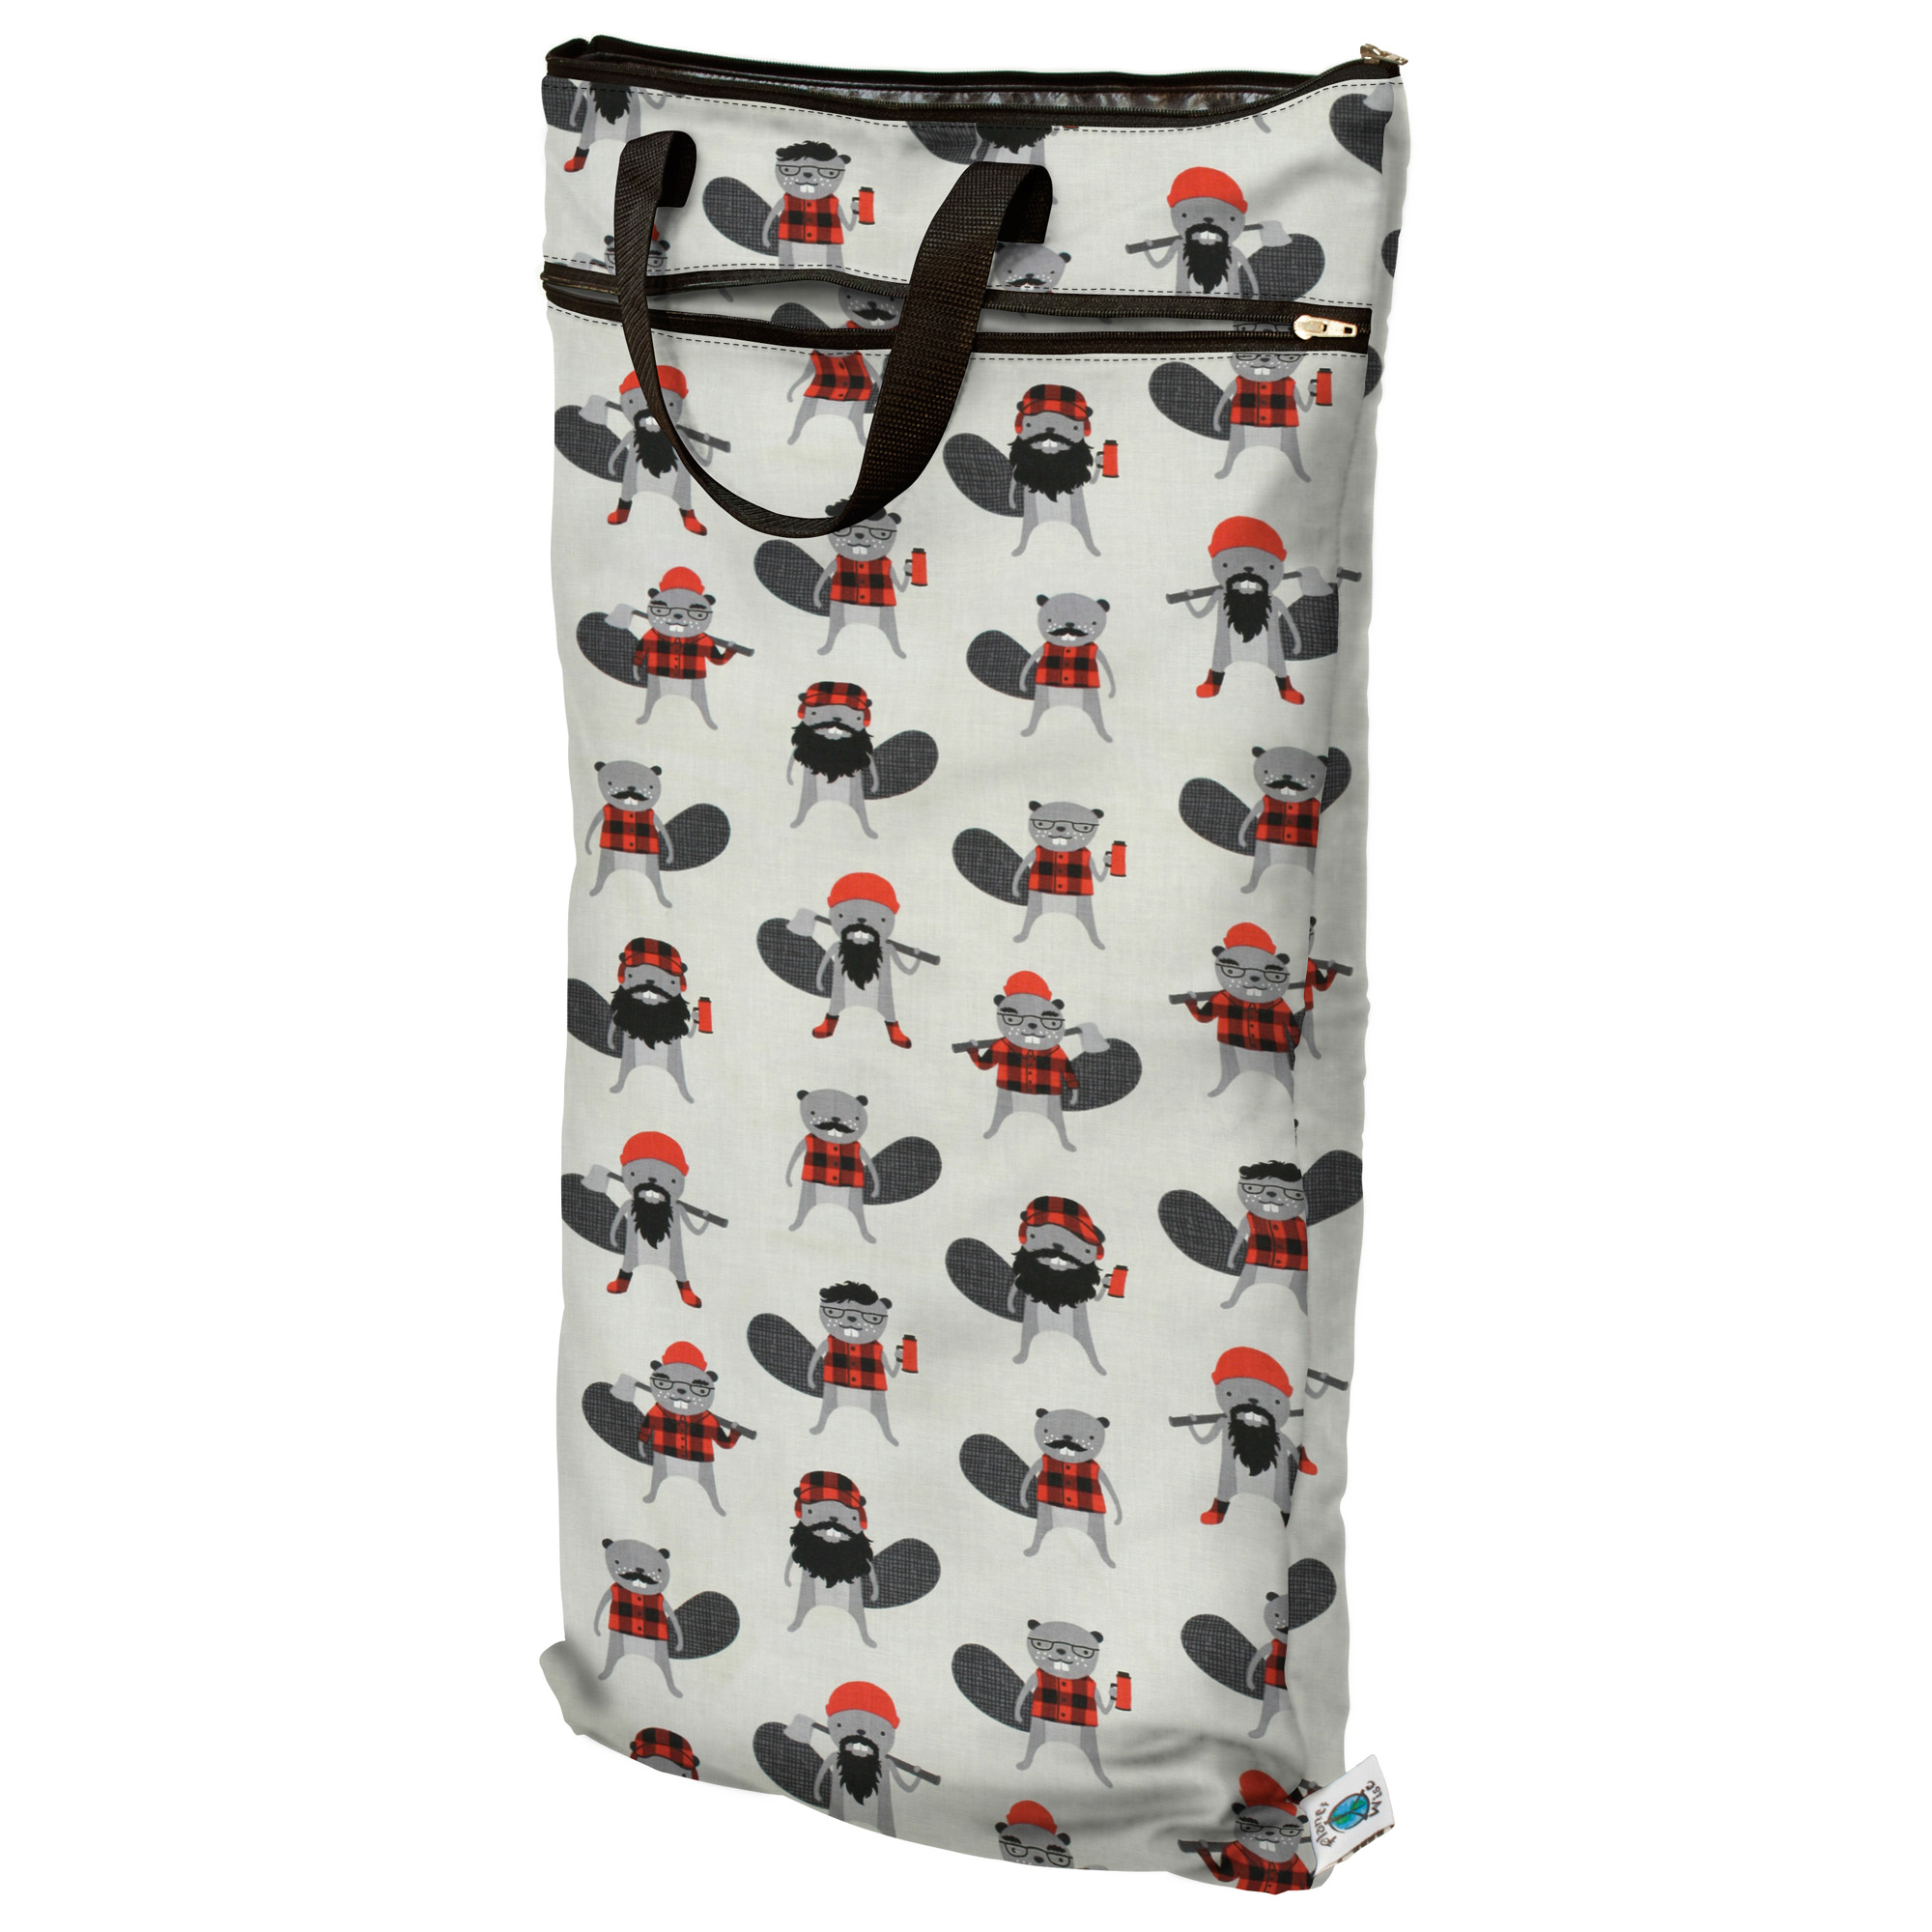 planet wise hanging wet/dry bag -  Burly Beaver